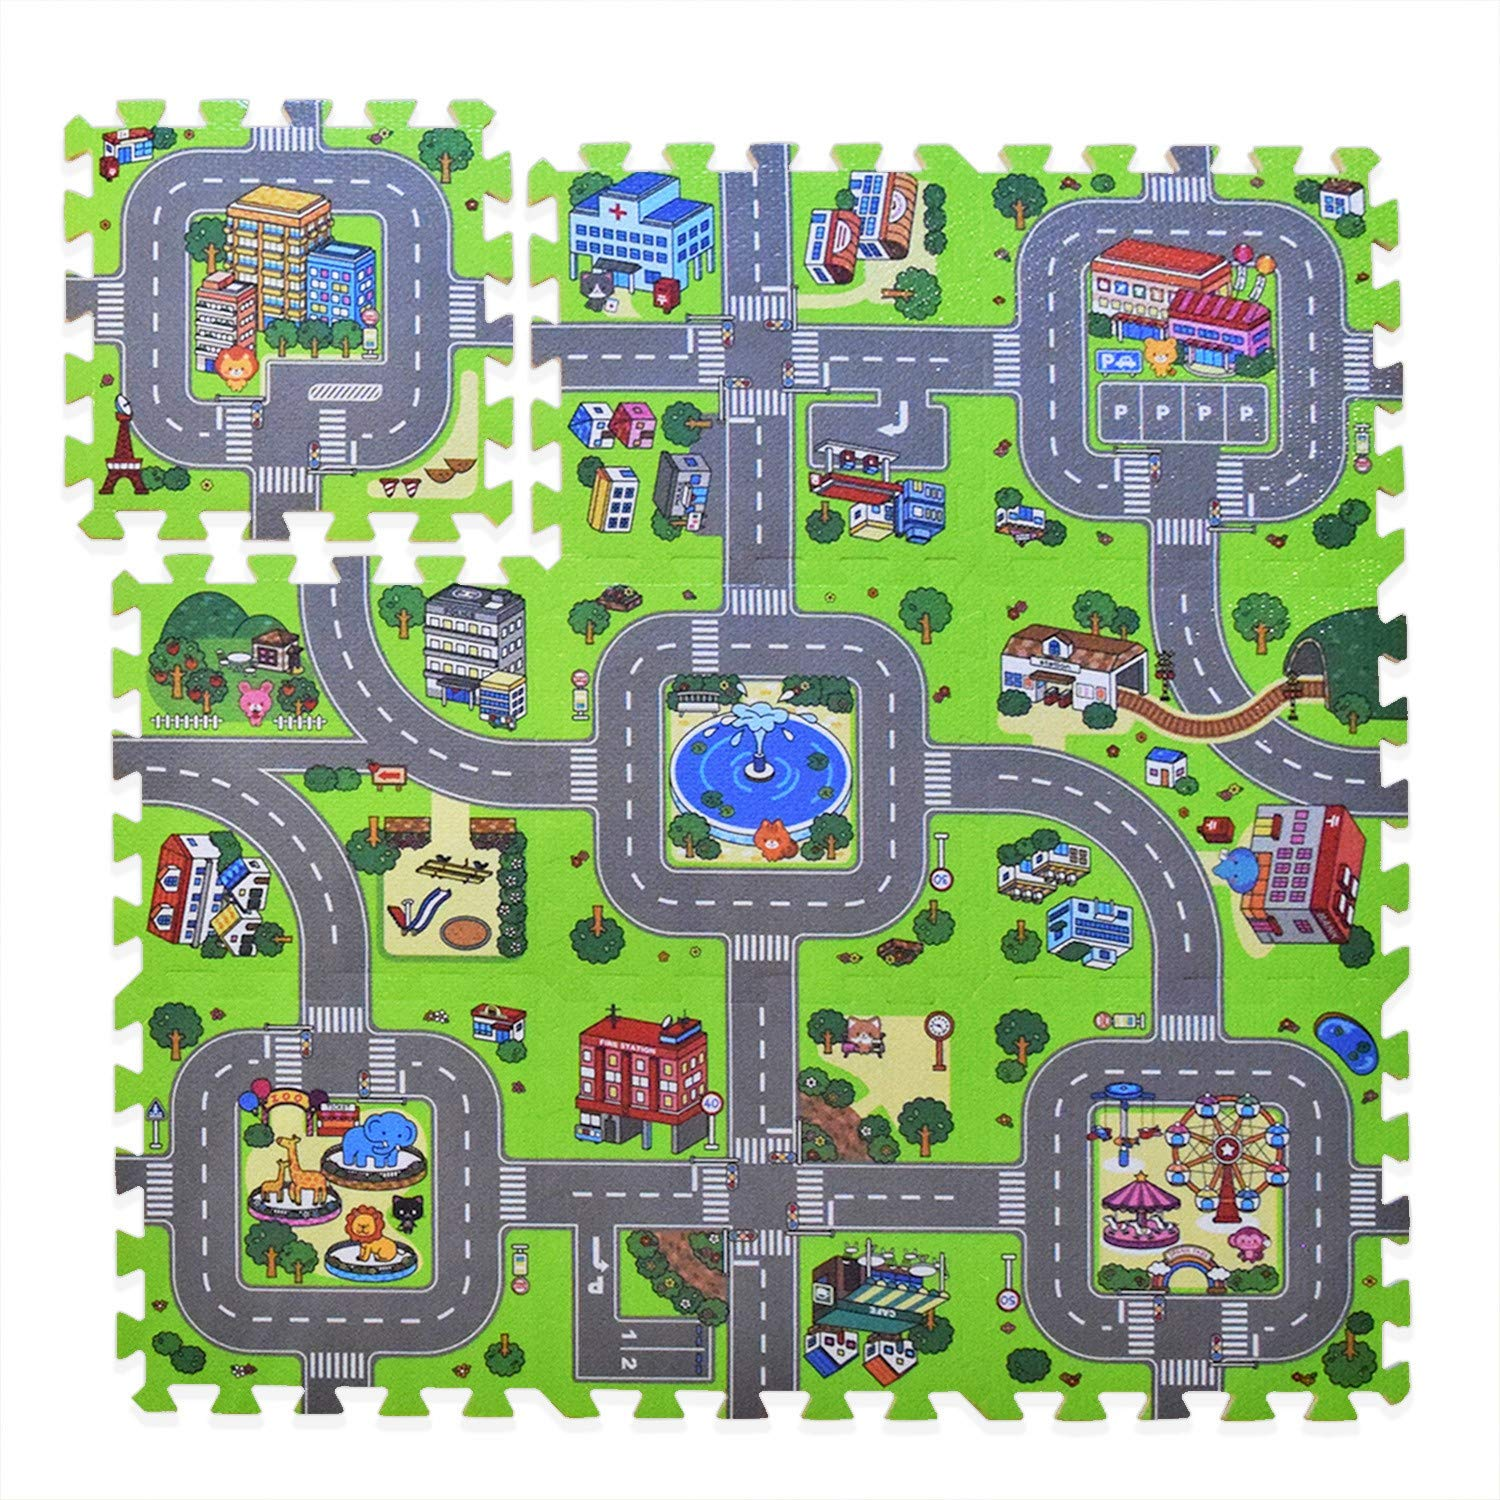 Exultimate Play Mat Road Toy Foam Playmat Interlocking Floor Puzzle Road Playroom Mat Interactive Play Set (9 Piece Set Zoo) by Exultimate